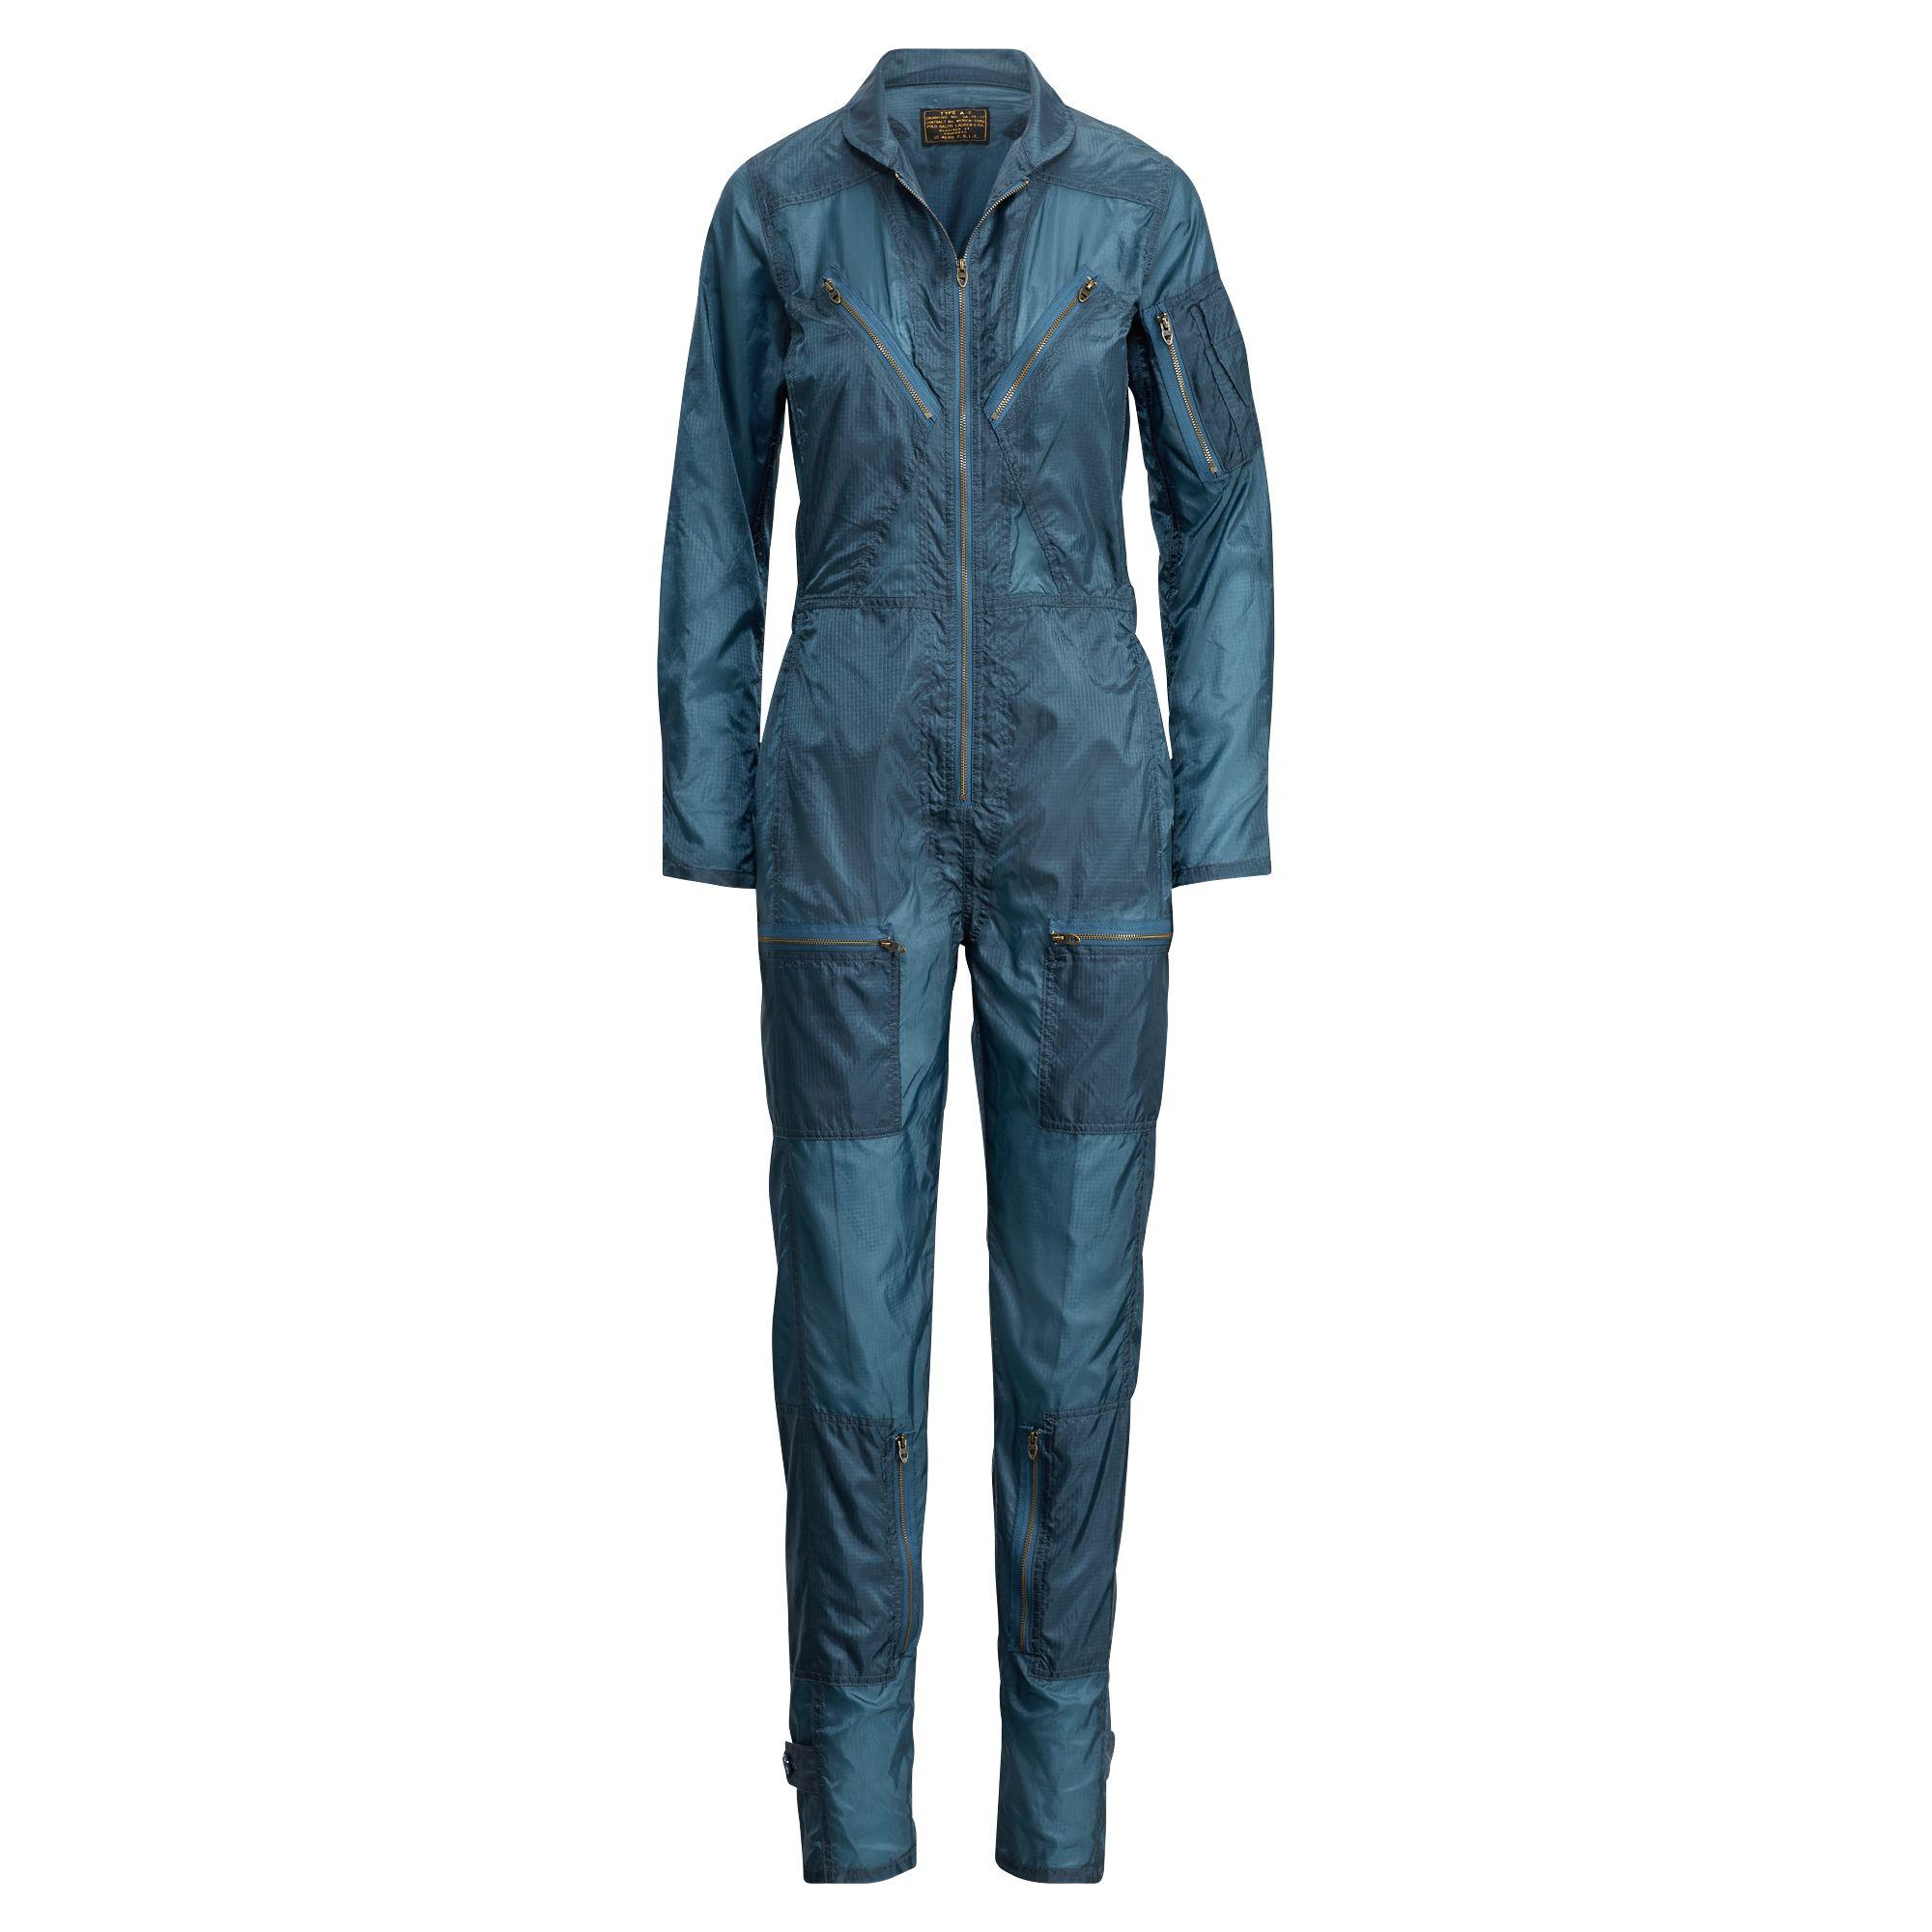 8647f035ab Lyst - Polo Ralph Lauren Ripstop Flight Jumpsuit in Blue